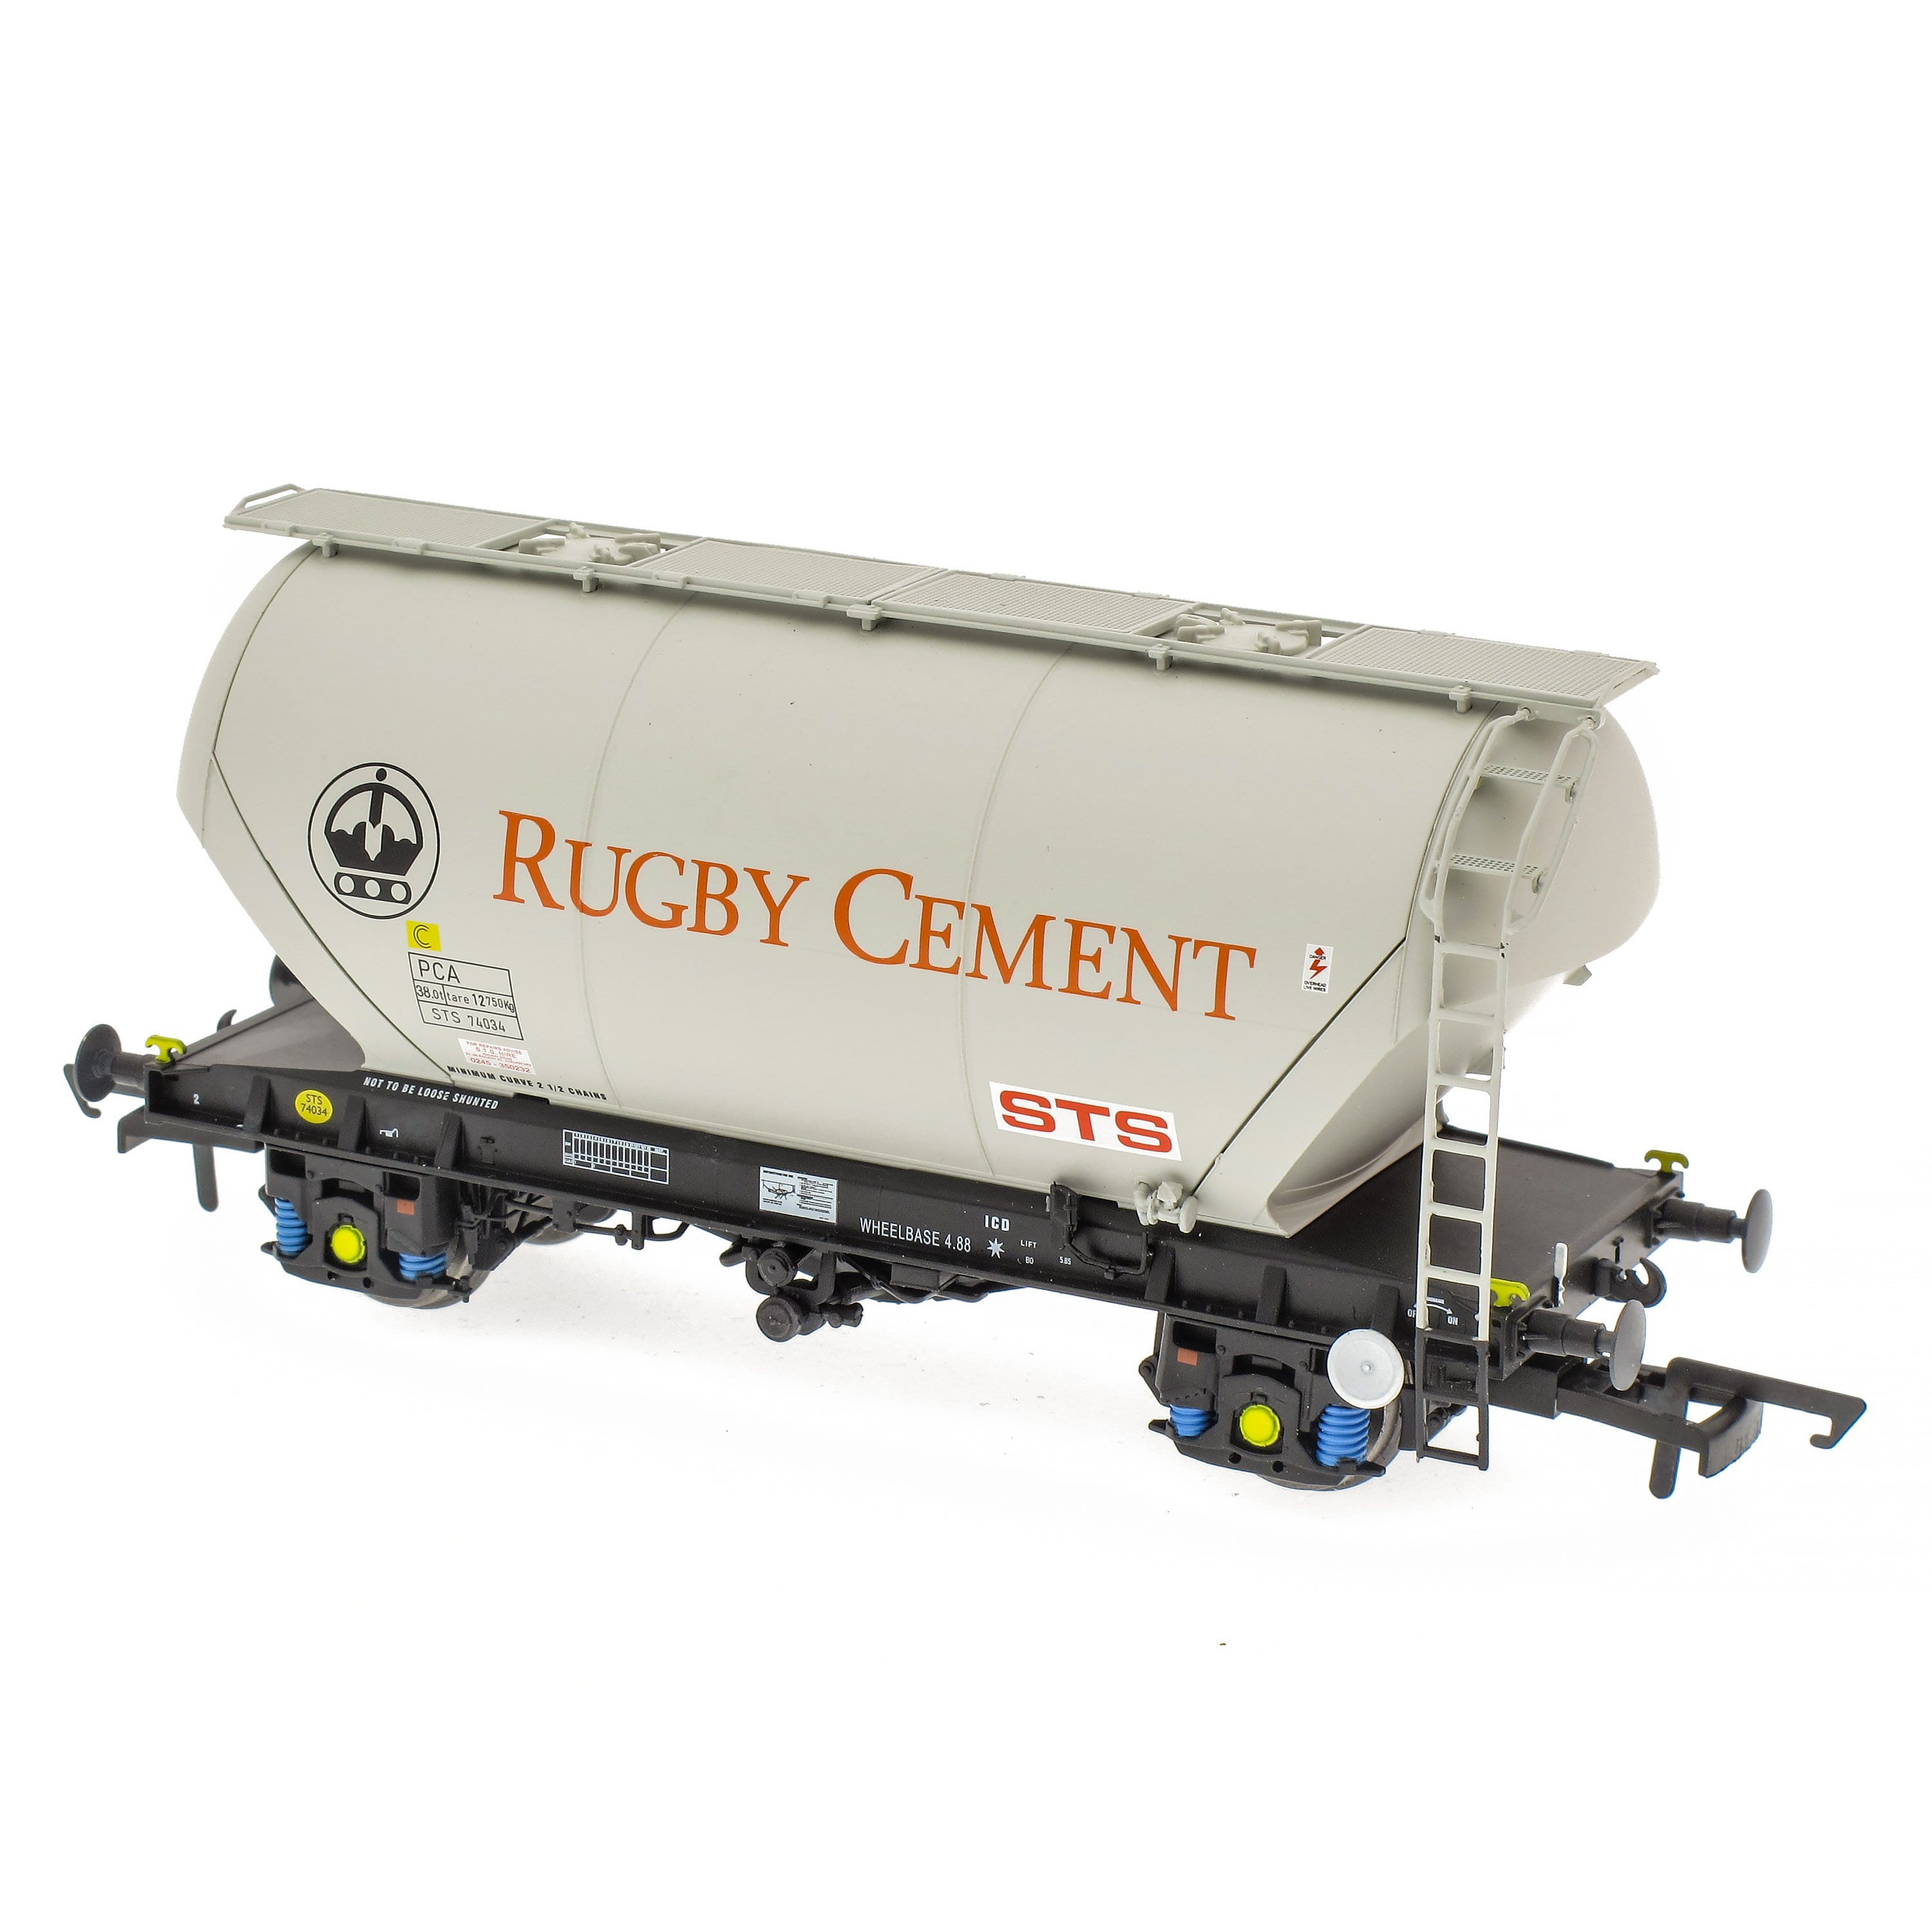 PCA Bulk Cement - Rugby Cement Pack H